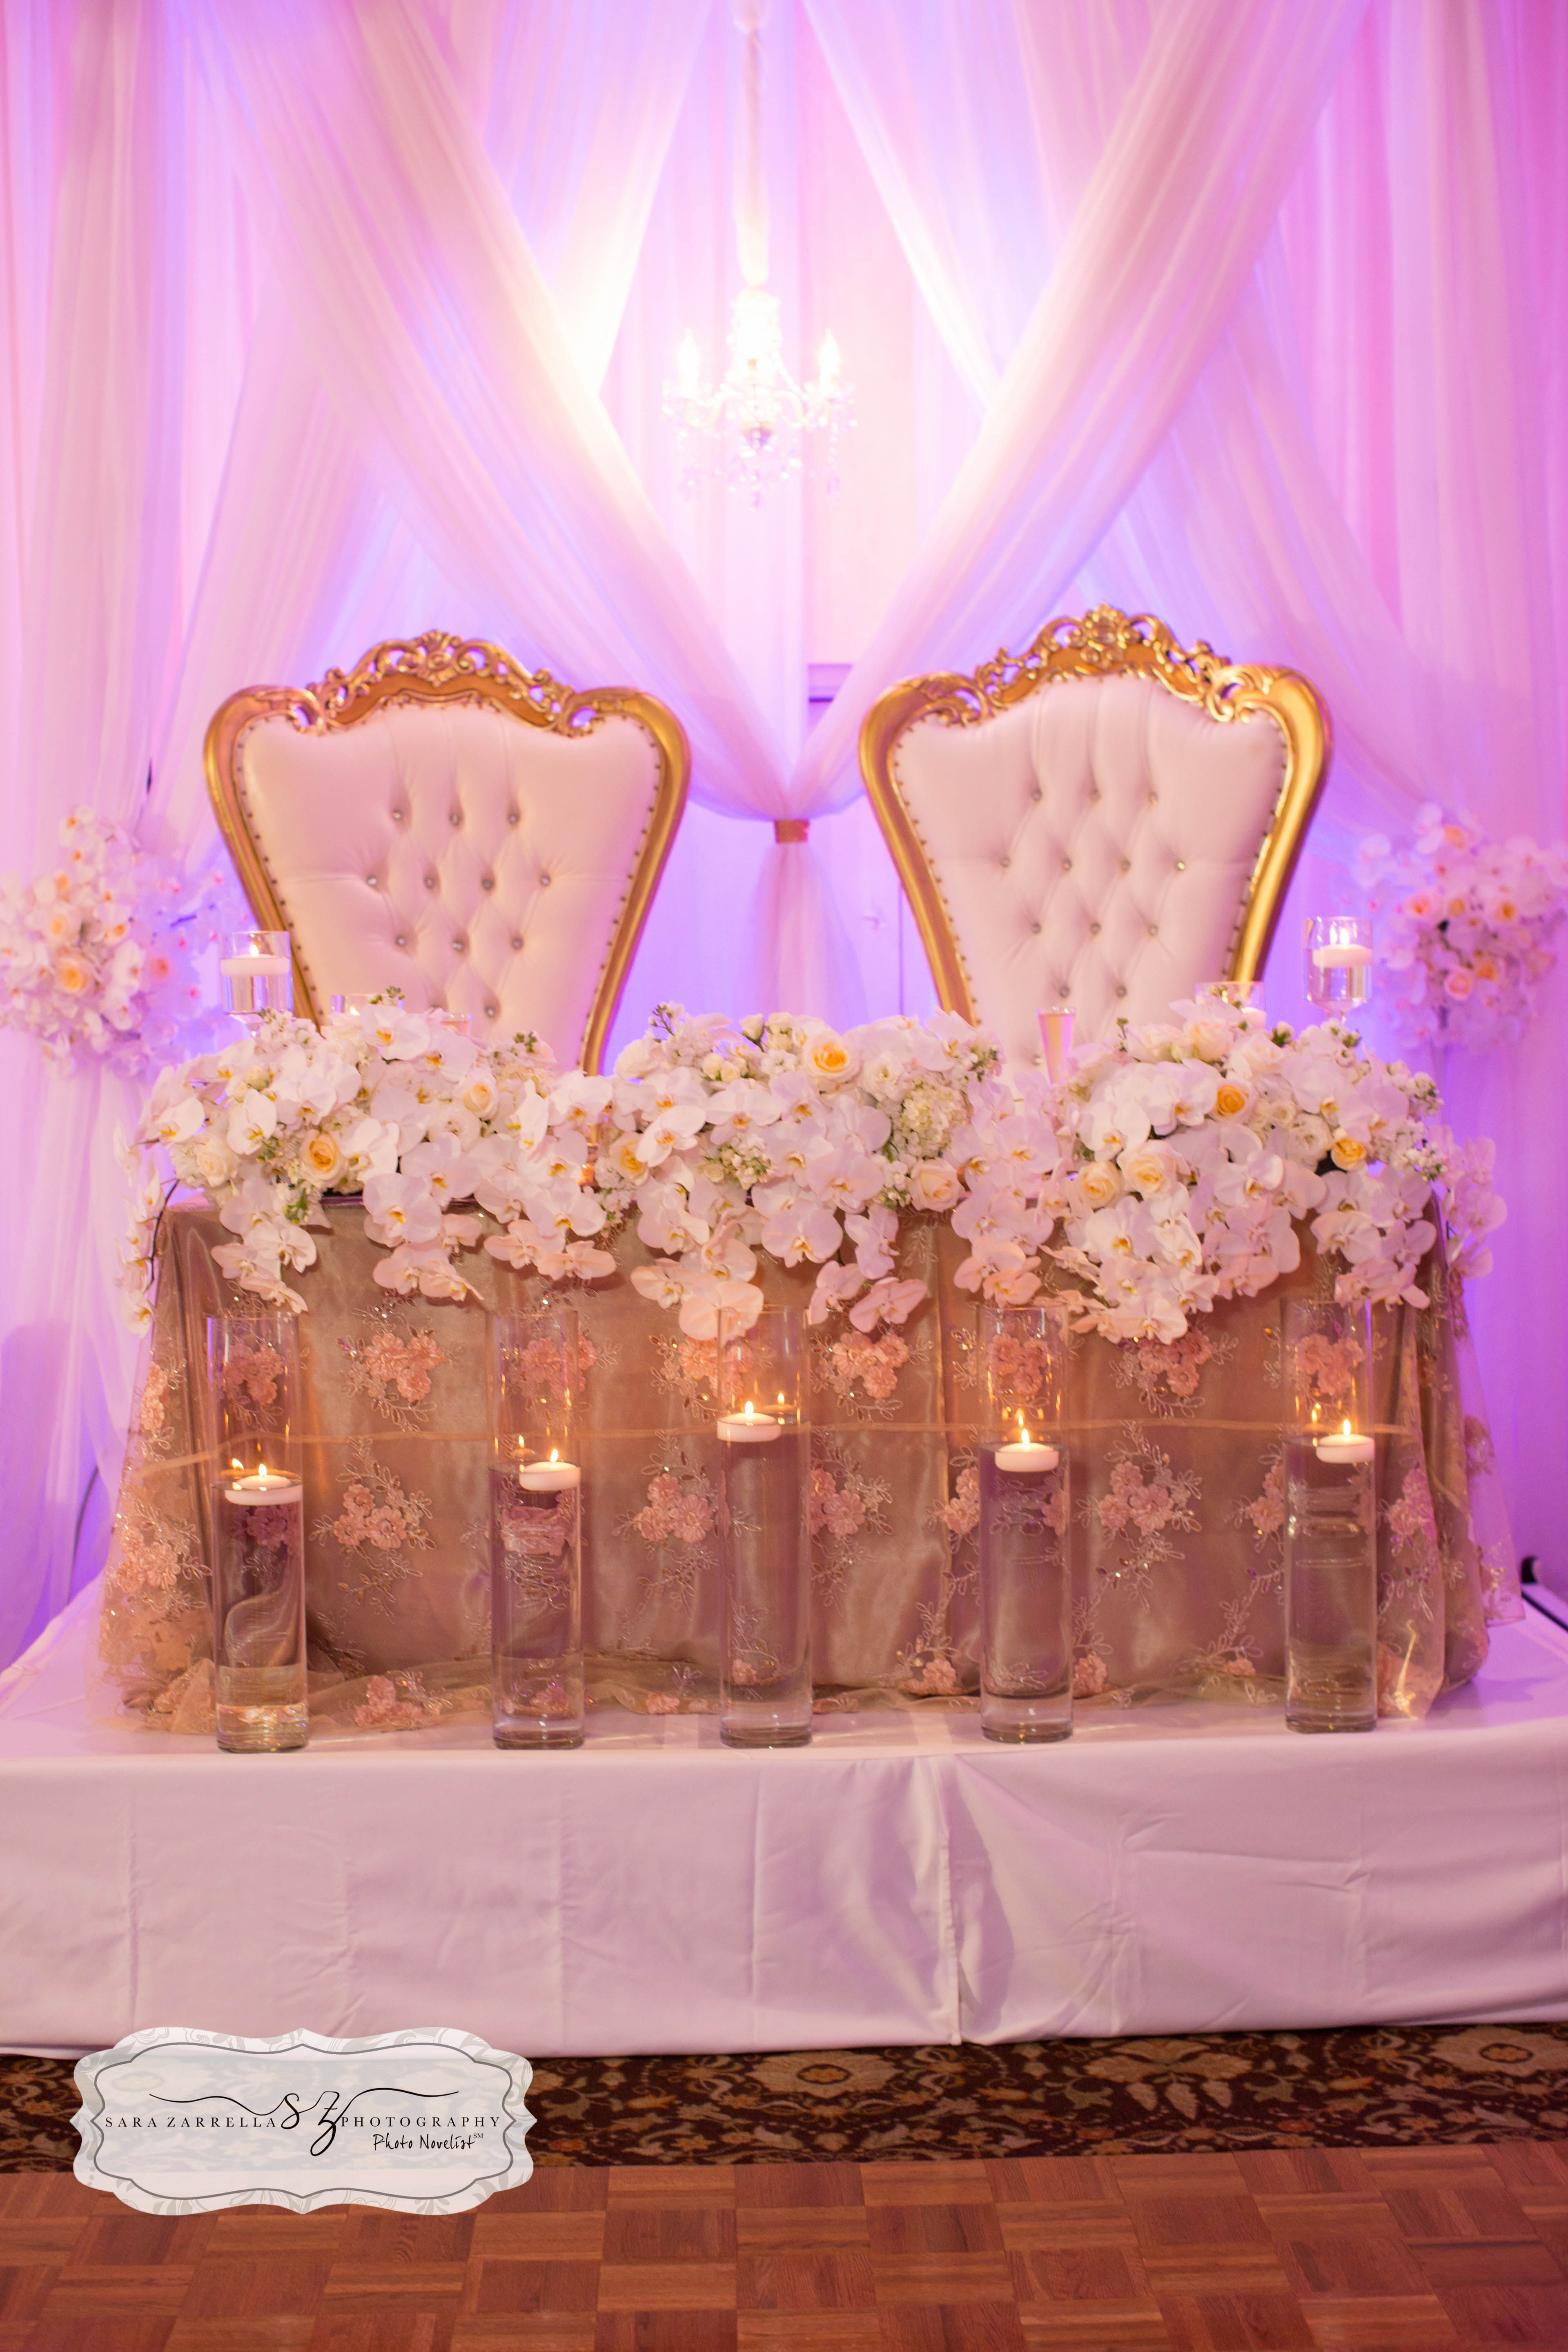 King And Queen Chairs For Rent Bedroom Pod Chair Sweetheart Table With Our Romance